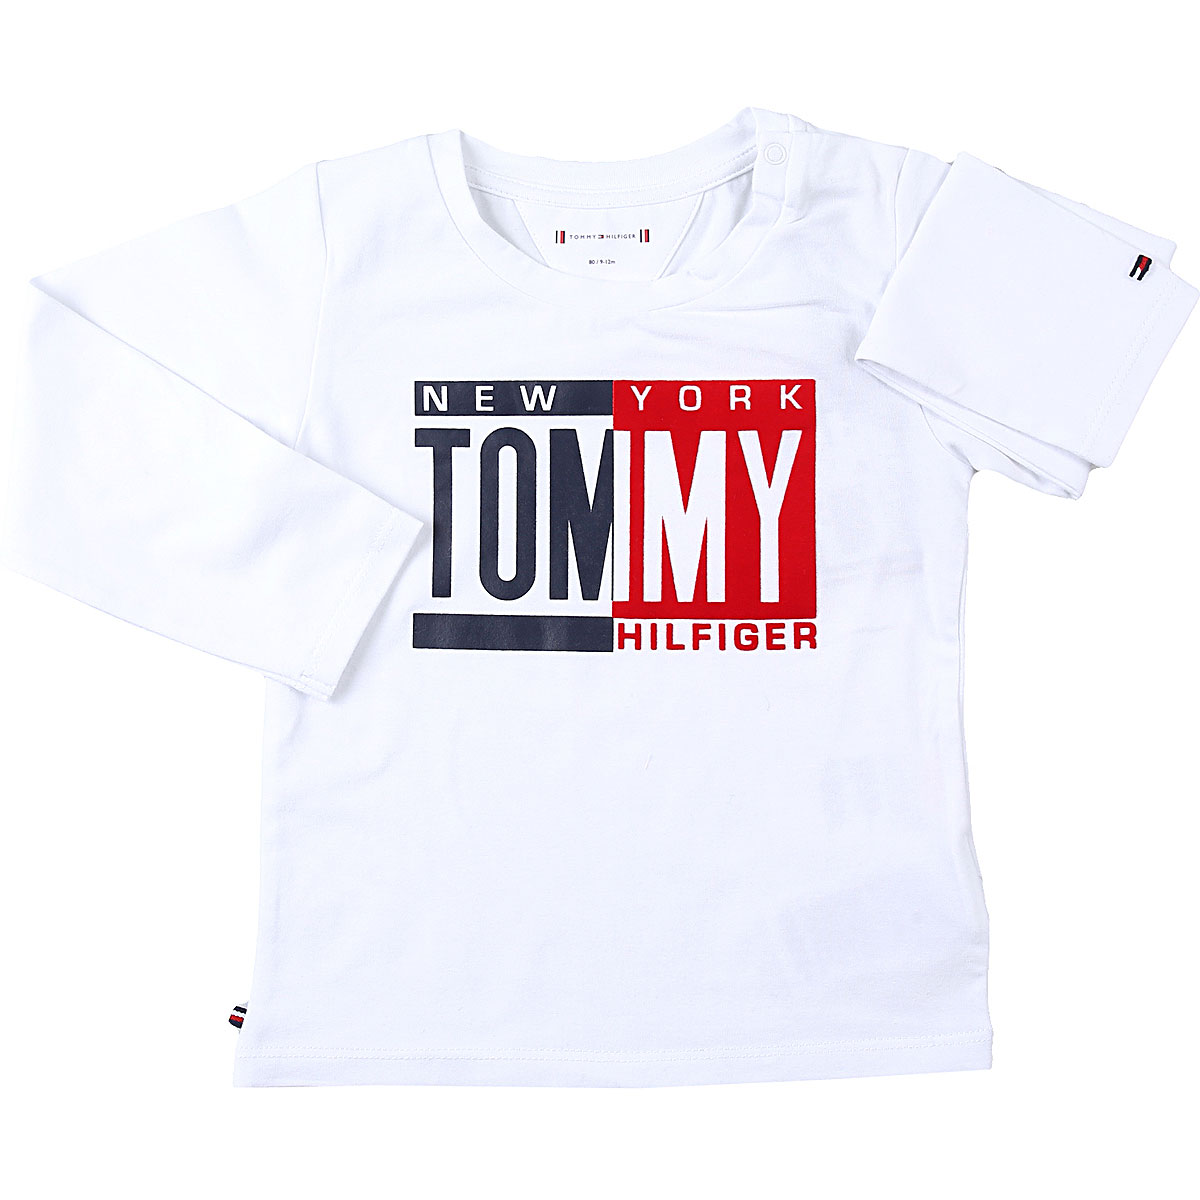 Tommy Hilfiger Baby T-Shirt for Boys On Sale, White, Cotton, 2019, 12 M 18M 2Y 3M 6M 9M